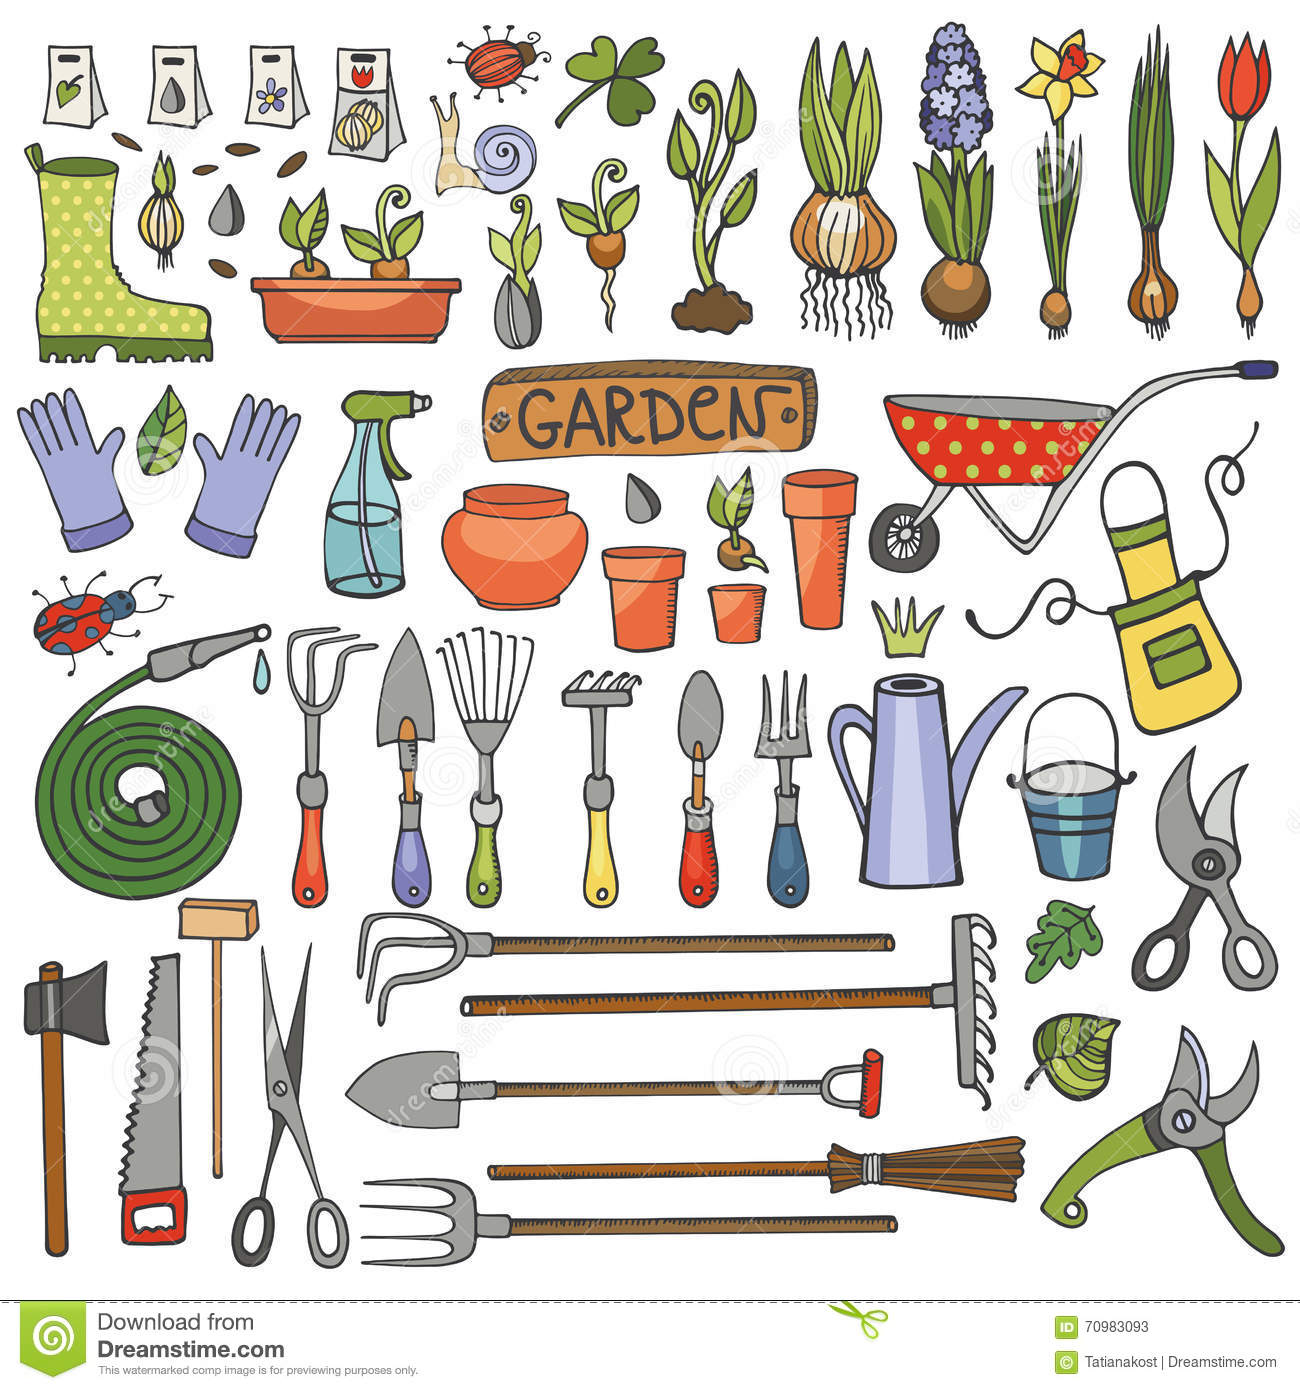 Garden tool set stock image 5393917 for Gardening tools cartoon